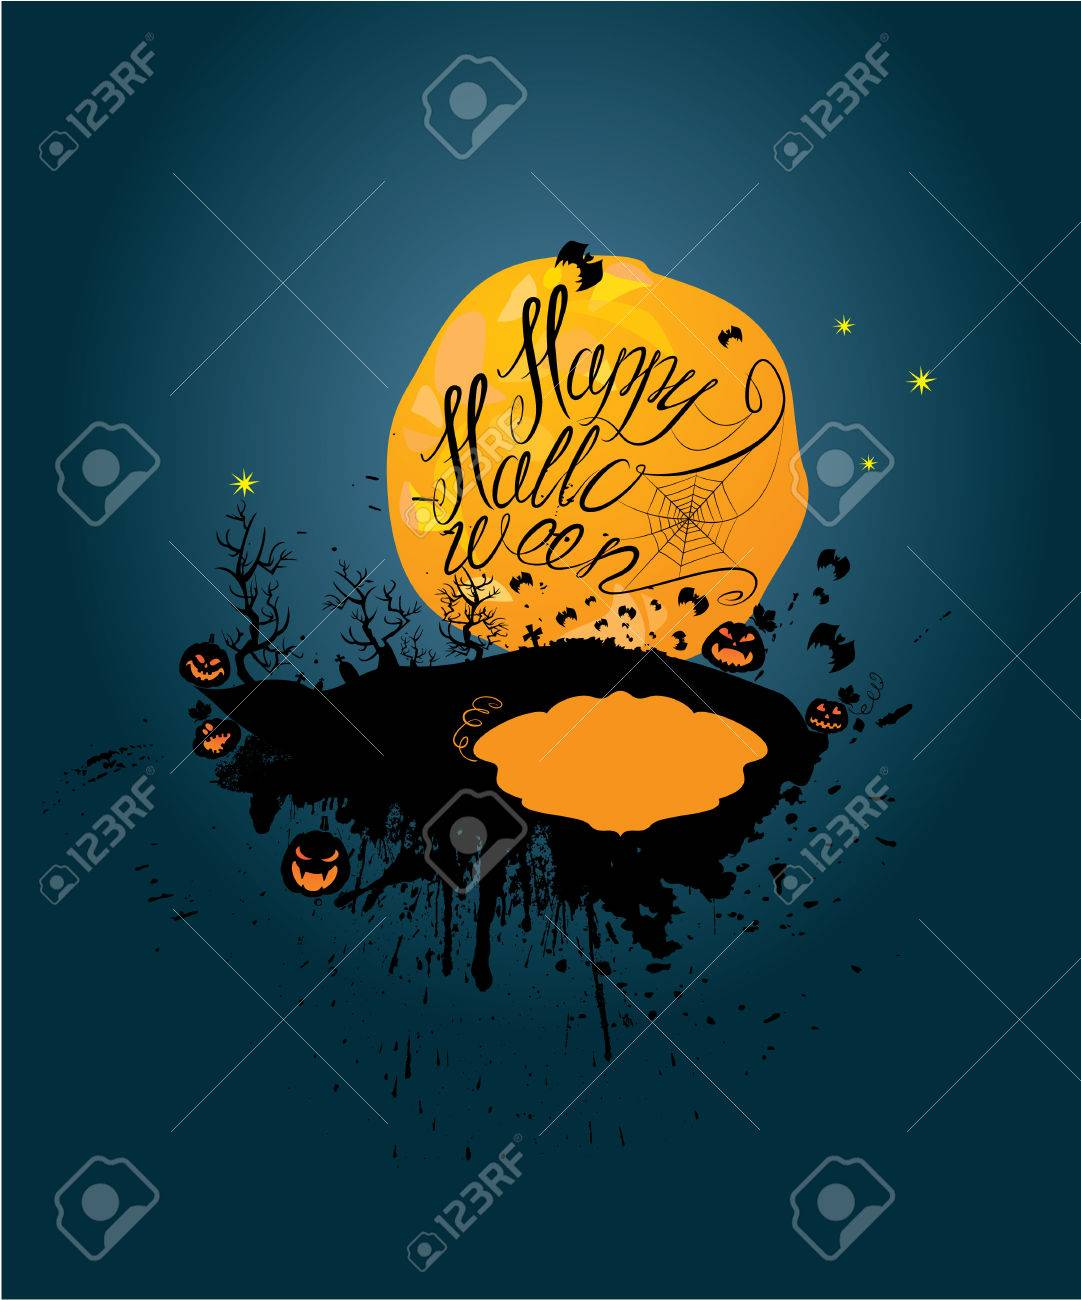 halloween night: pumpkins silhouette on moon and sky background